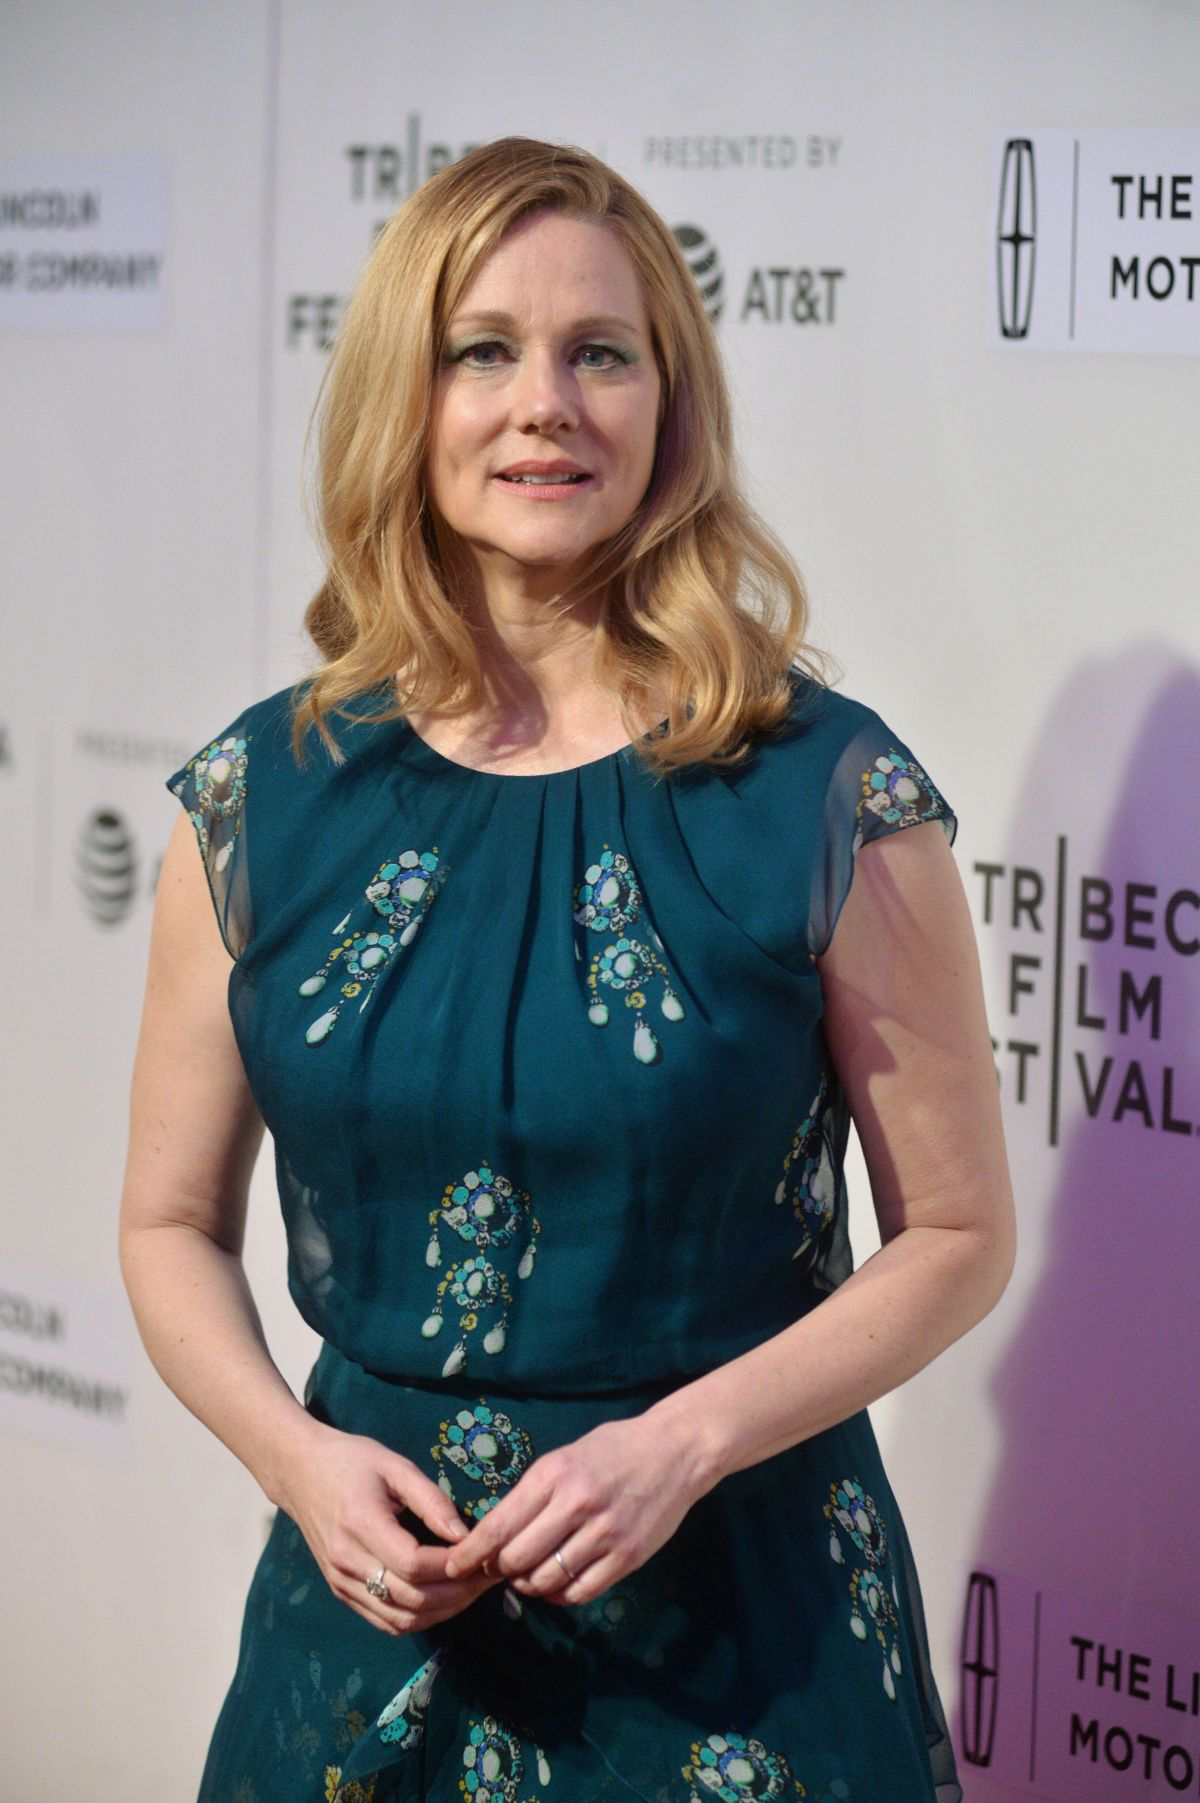 LAURA LINNEY at The Dinner Premiere at 2017 Tribeca Film Festival 04/24/2017